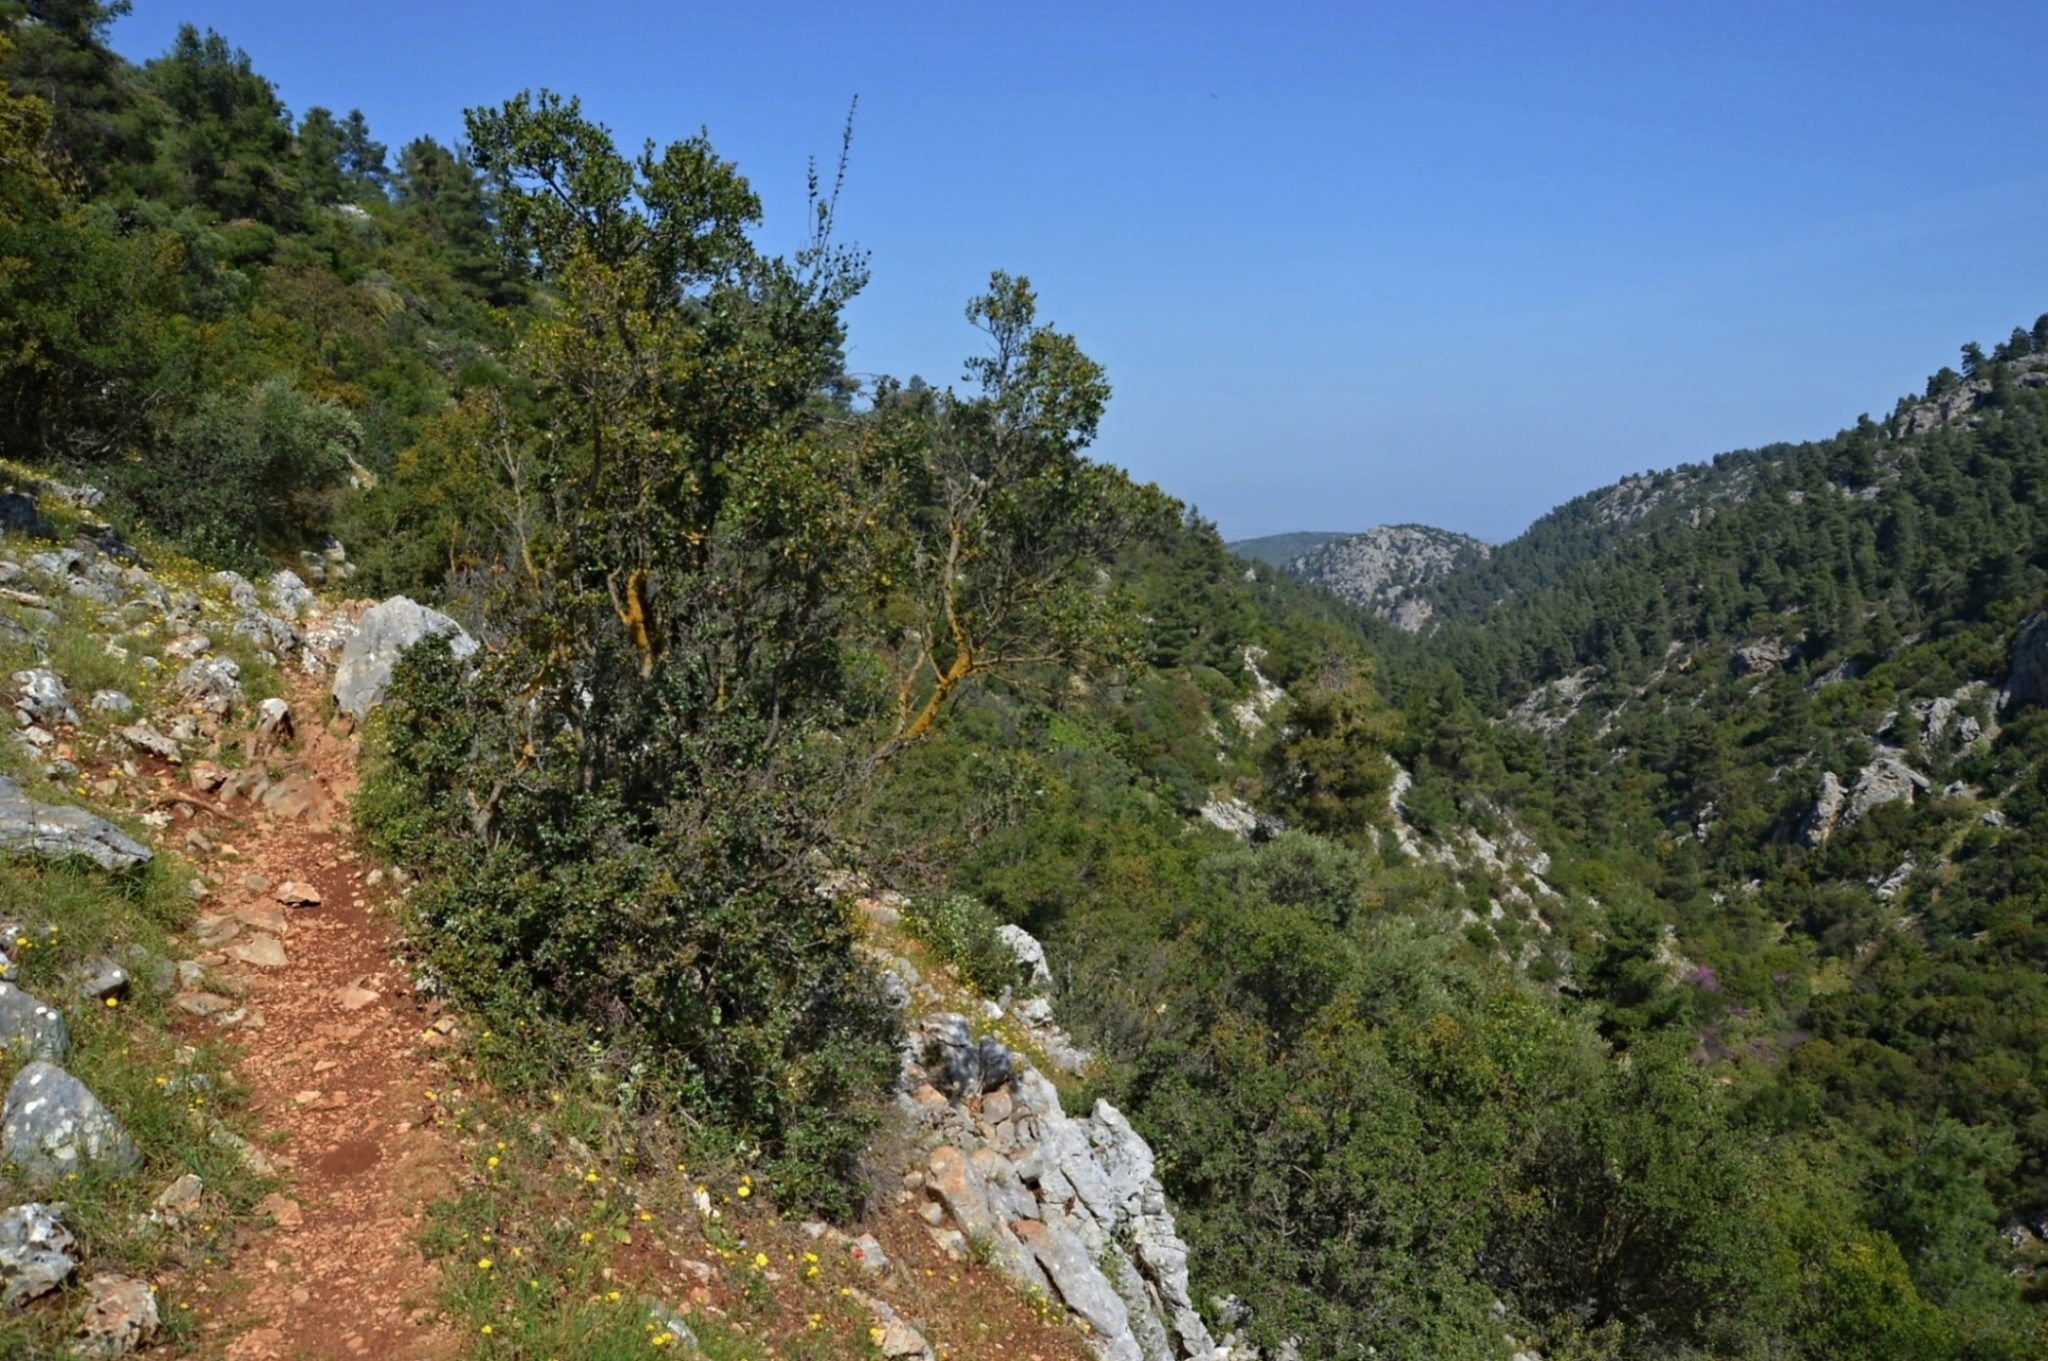 The final streatch befor reaching Agia Marina is the most striking.